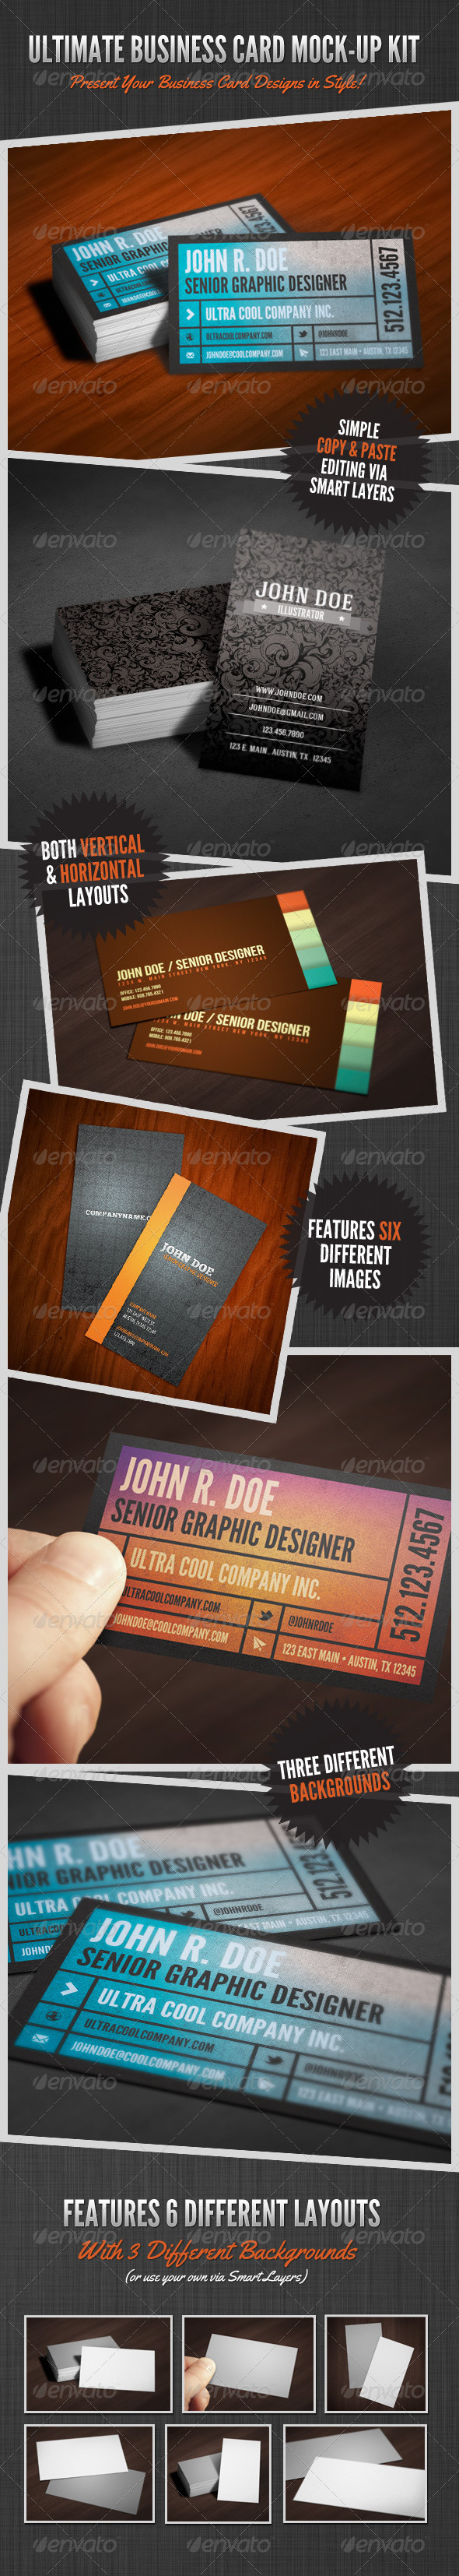 Ultimate Business Card Mock-Up Kit - Print Product Mock-Ups